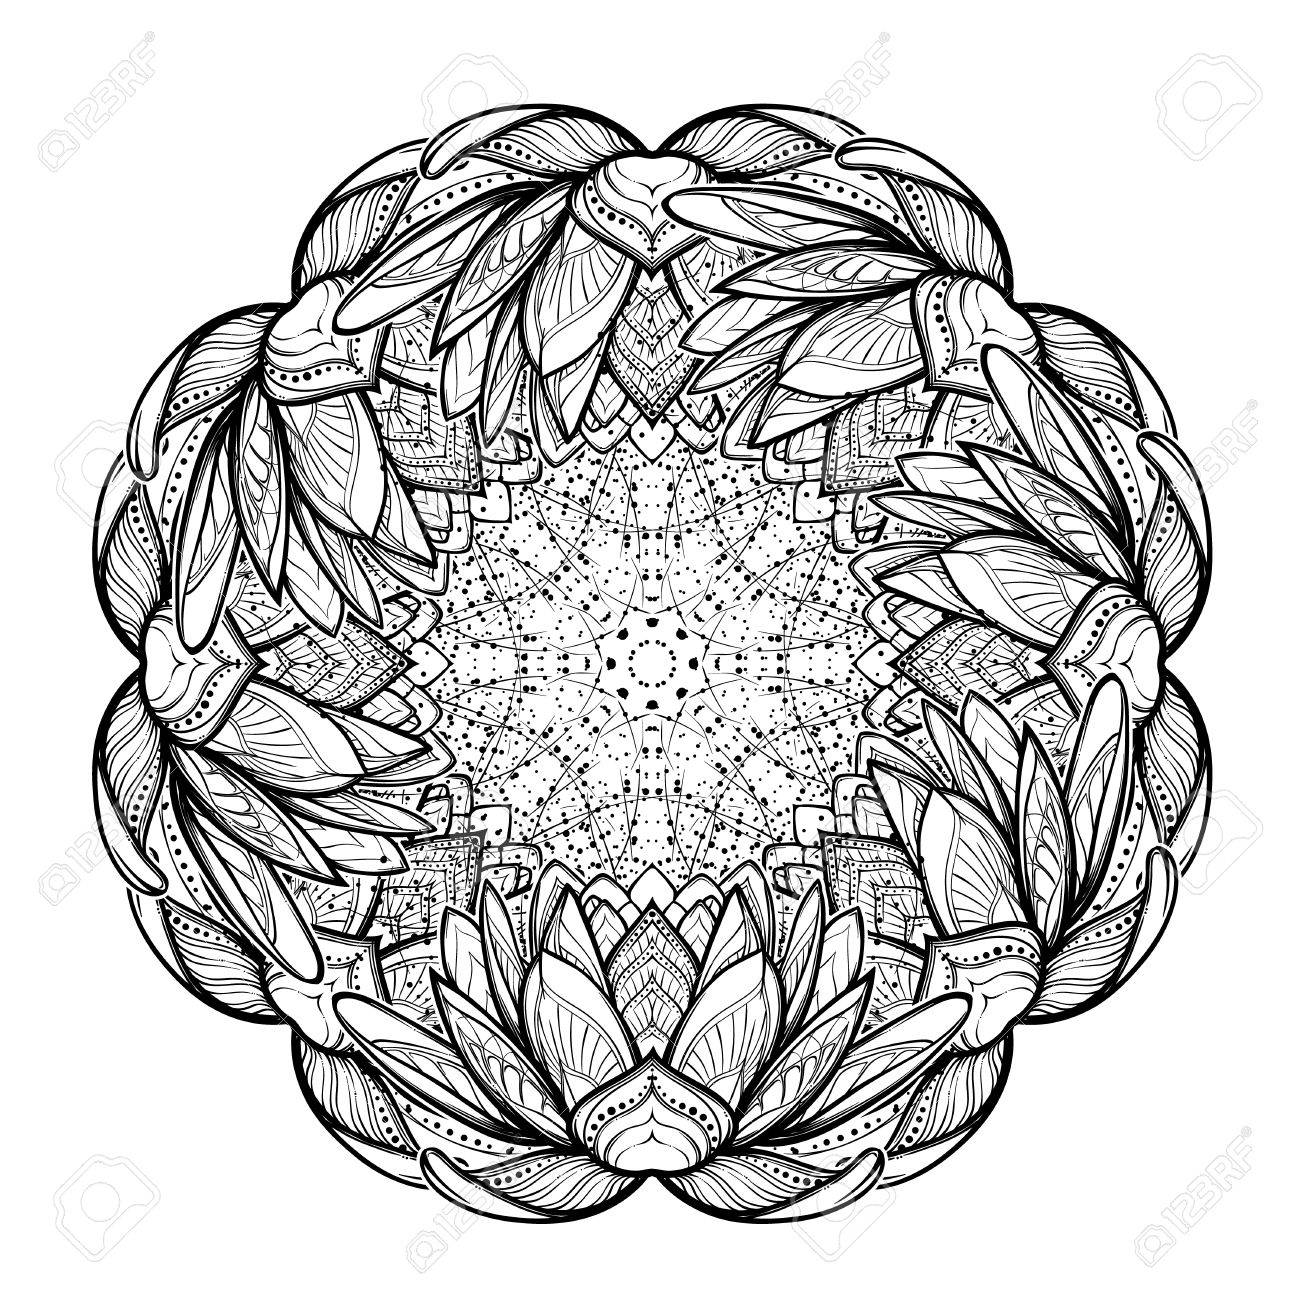 1300x1300 Lotus Flower Mandala. Intricate Stylized Linear Drawing Isolated